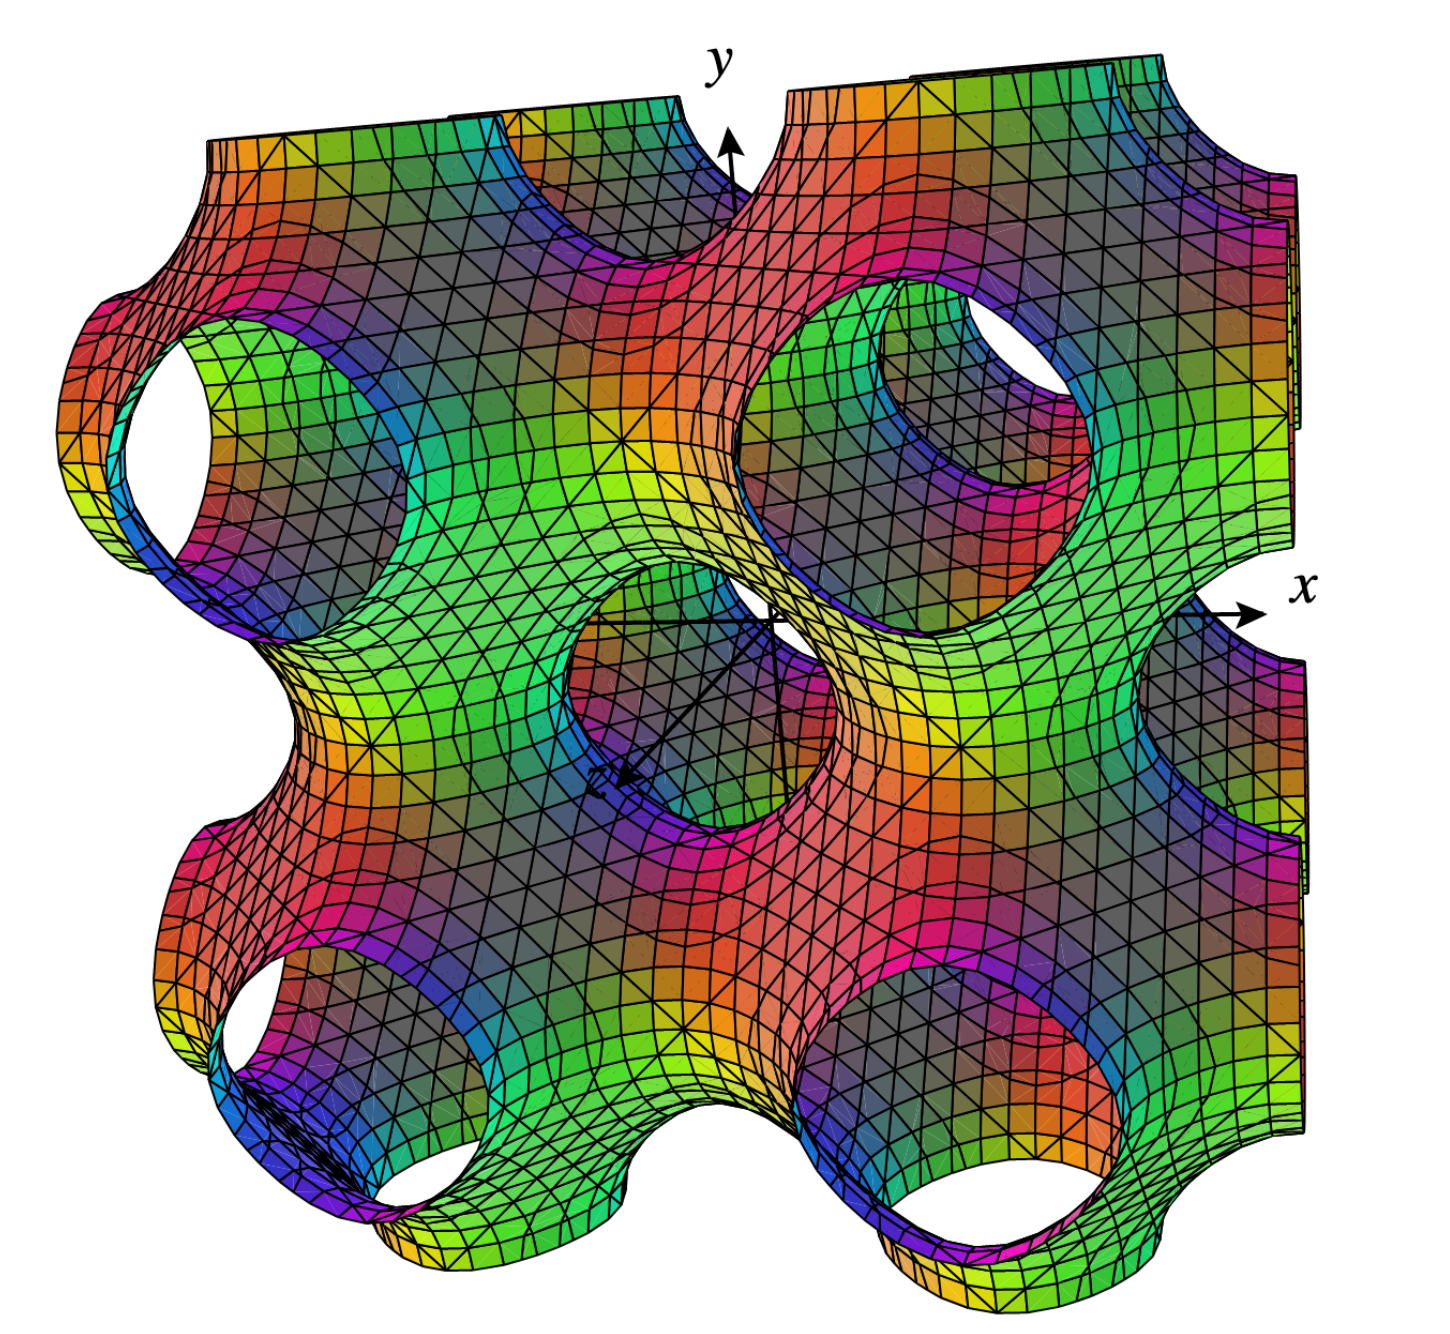 Fig. 1: Graphical representation of a cubosome. The coloured surface resembles the lipid-water interface with the confined water channels. The channel diameter is typically in the range of 10 nanometres, with the overall size of the cubosomes being several hundred nanometres.